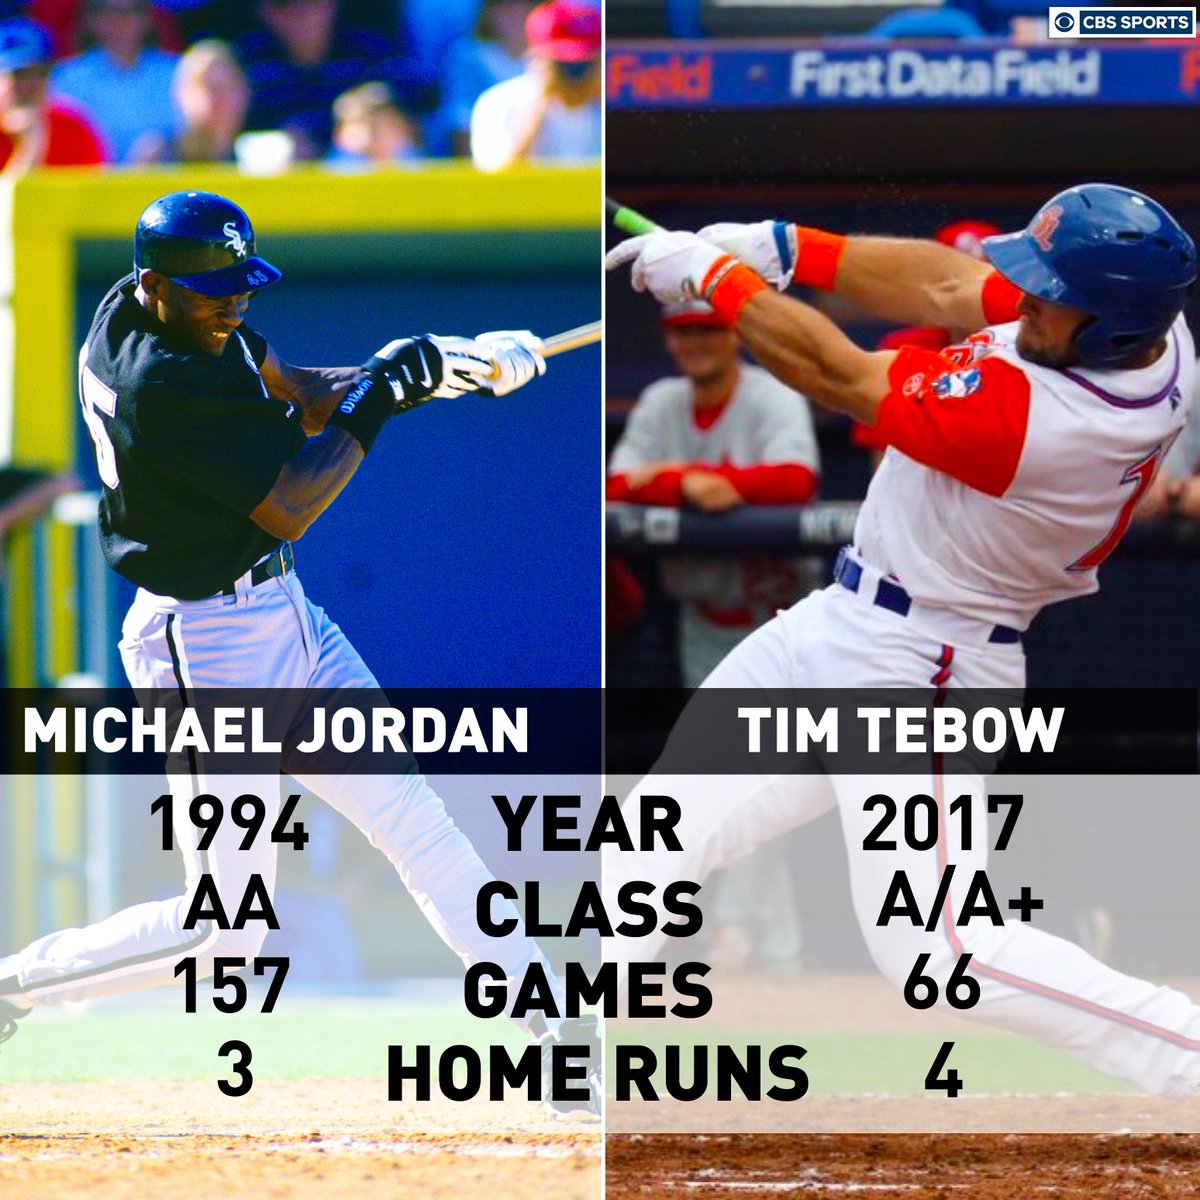 Tim Tebow's ceiling is the roof. https://t.co/cDJ106vG4C